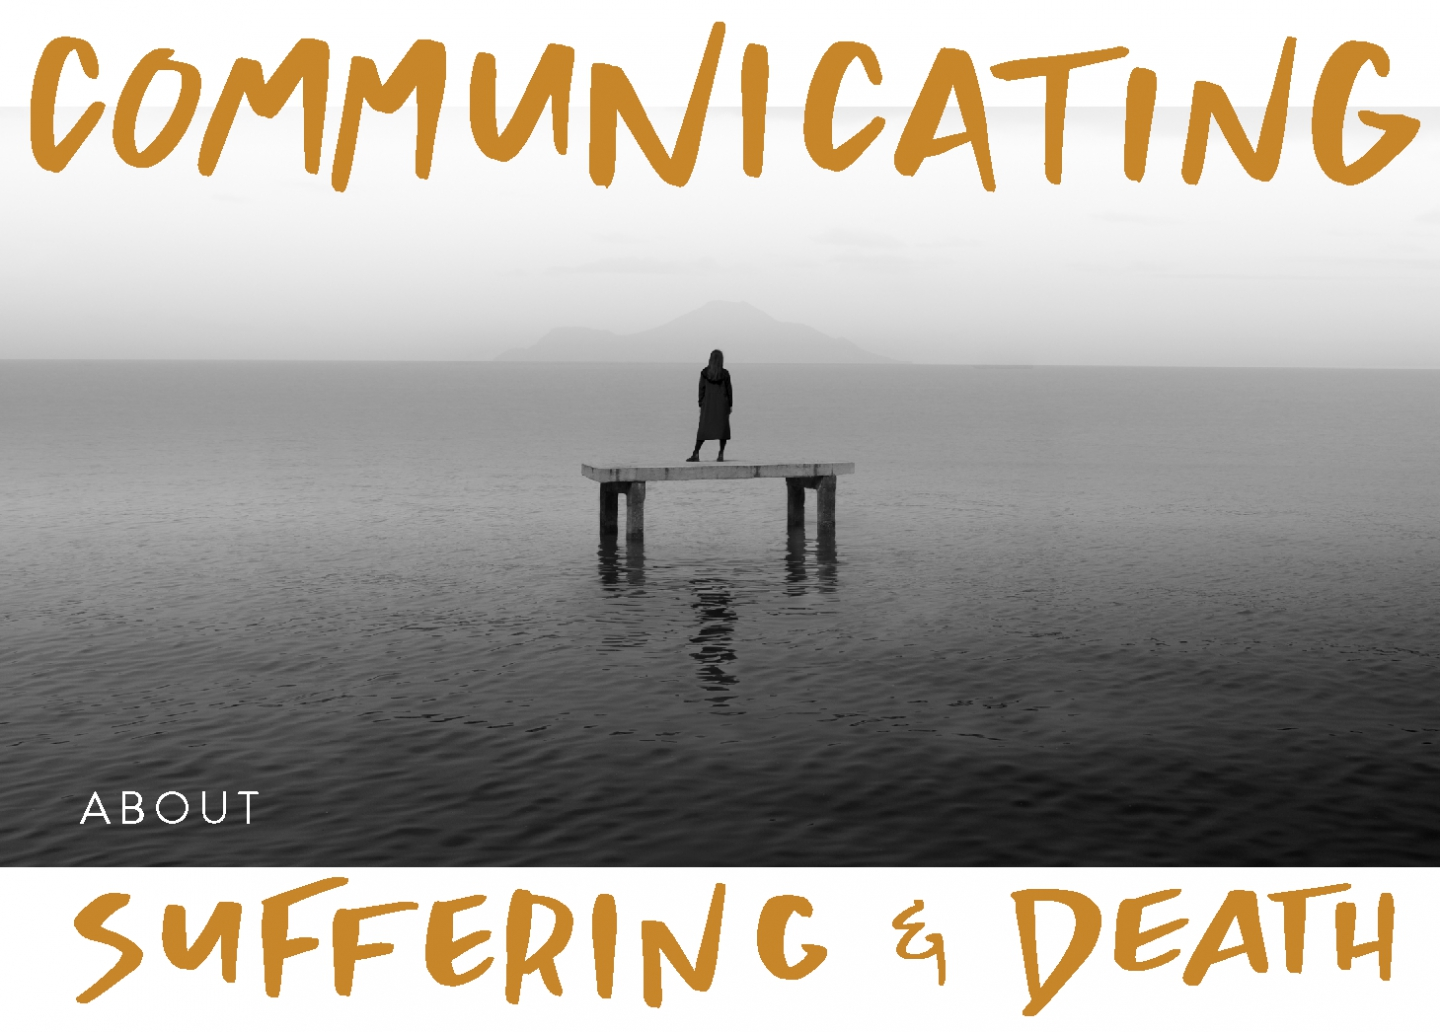 Communicating About Suffering and Death